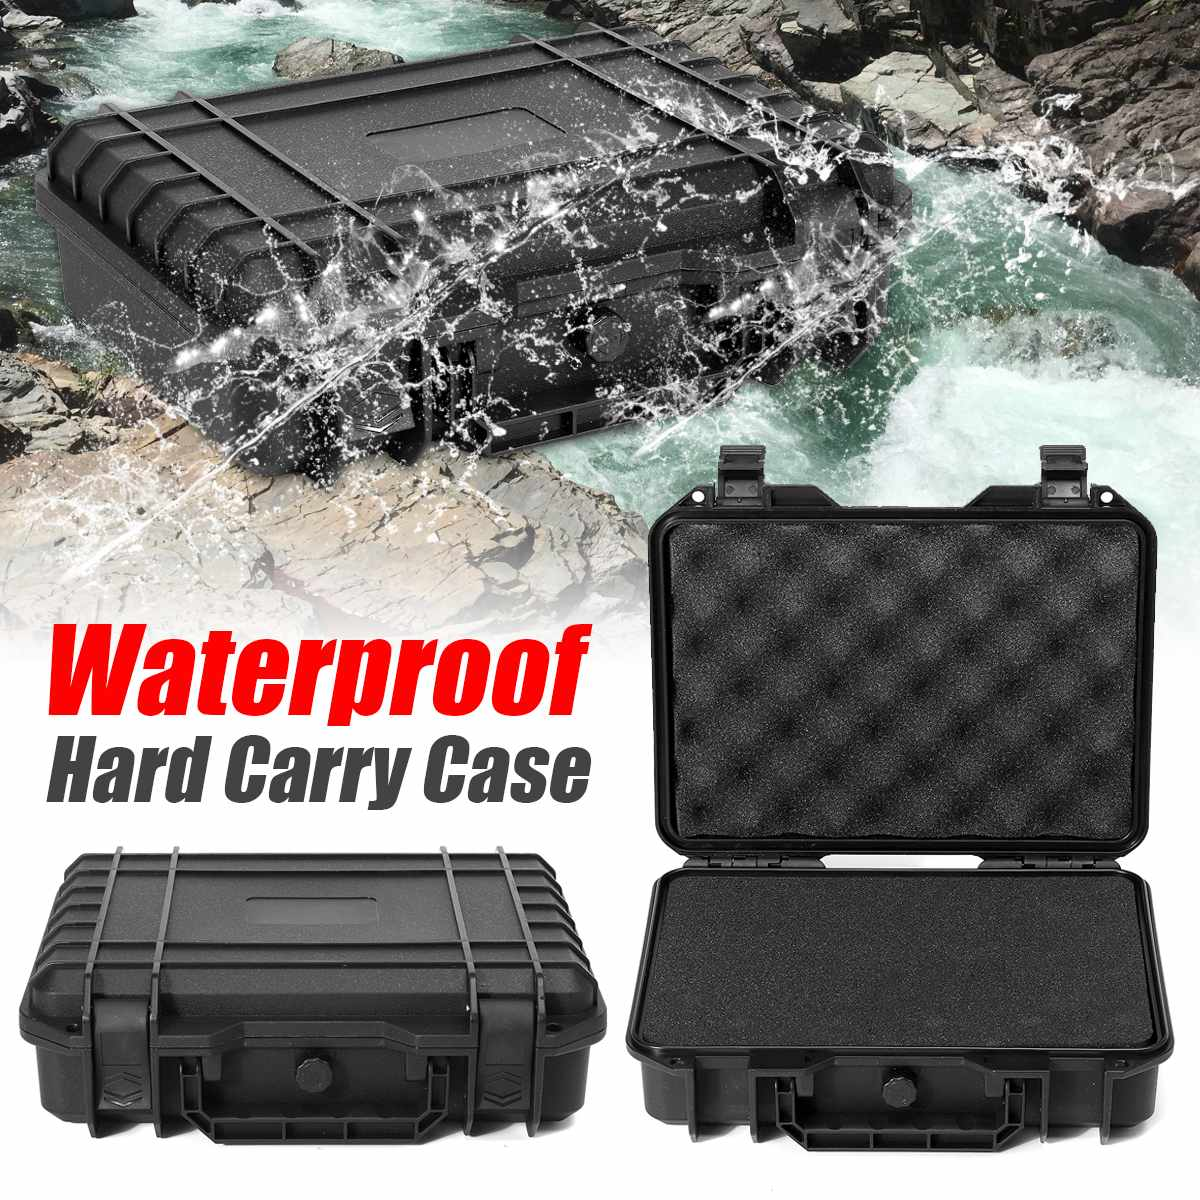 Large Size Waterproof Hard Carry Case Bag Tool Kits With Sponge Storage Box Safety Protector Organizer Hardware Toolbox